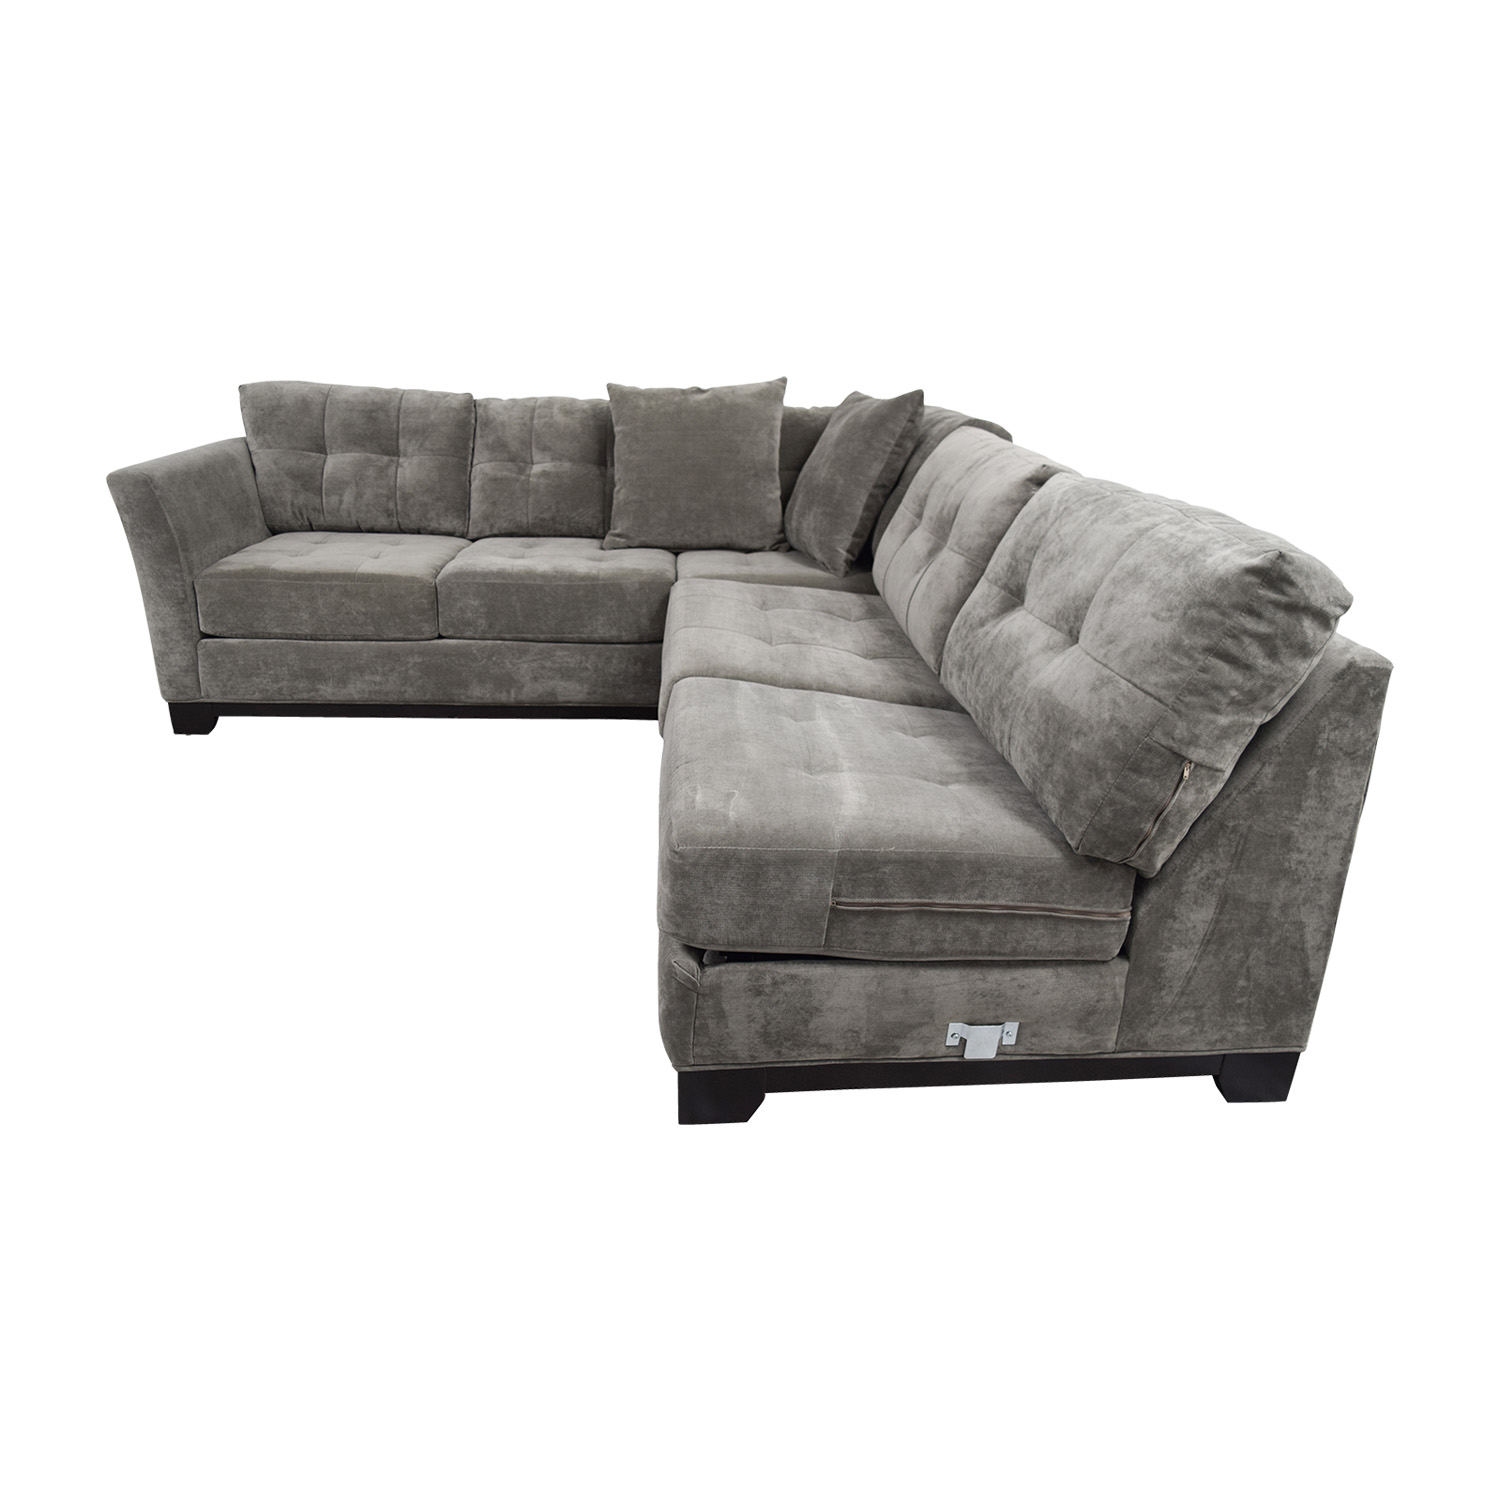 Macy's Gypsy Grey L-Shaped Sleeper Sectional / Sofas